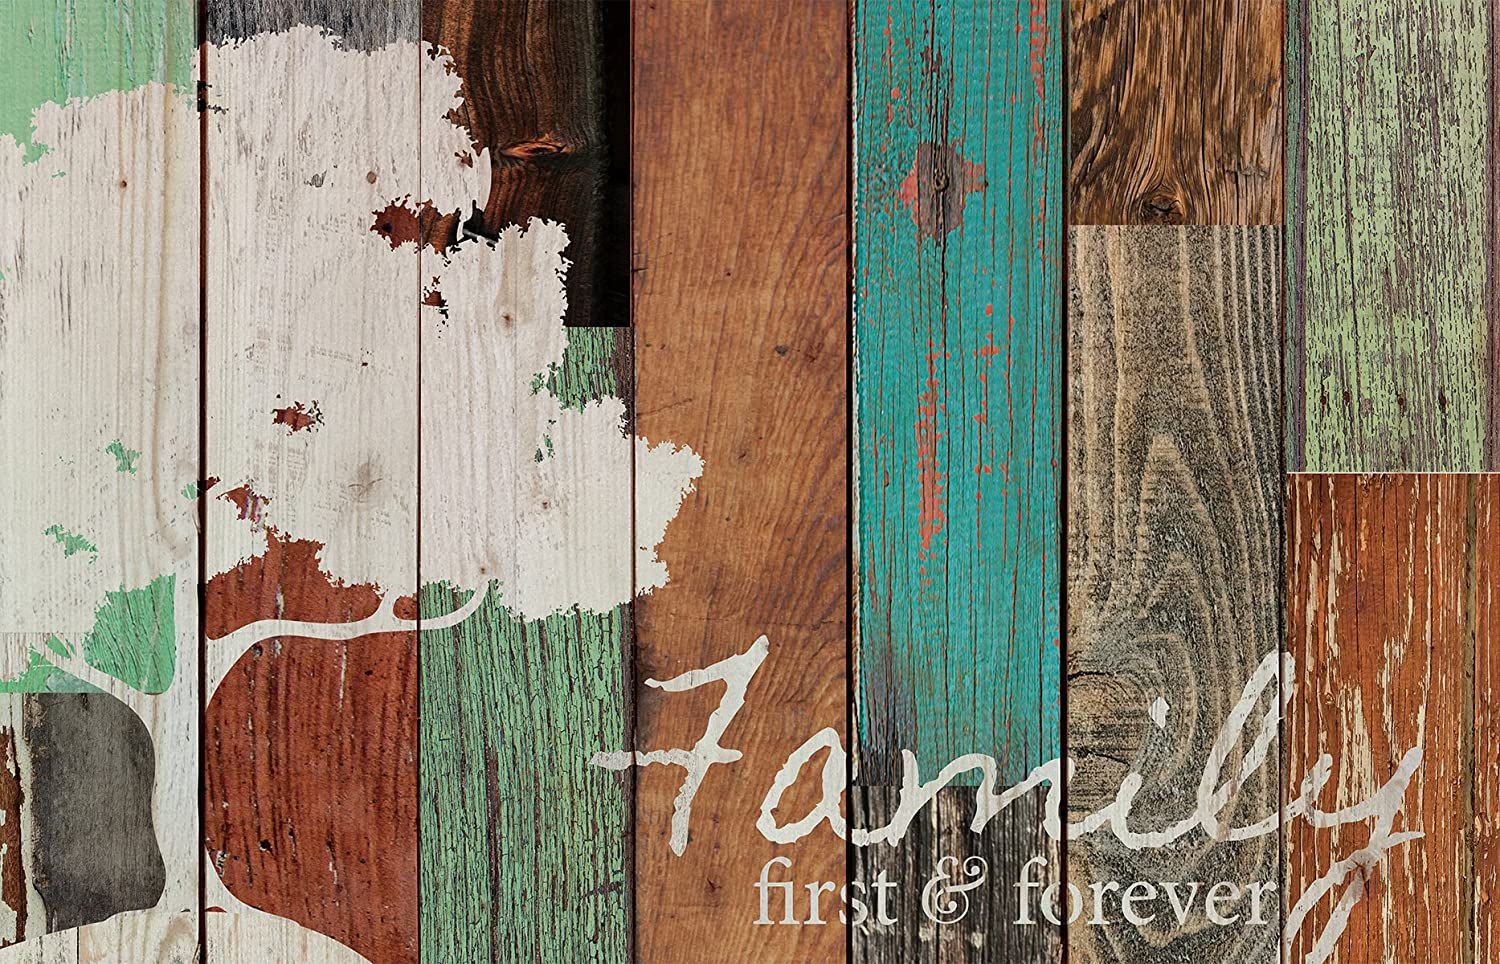 Family First & Forever Rustic Decor Multi-color Pallet Wood Sign and Wall Art - 16 x 24-inches